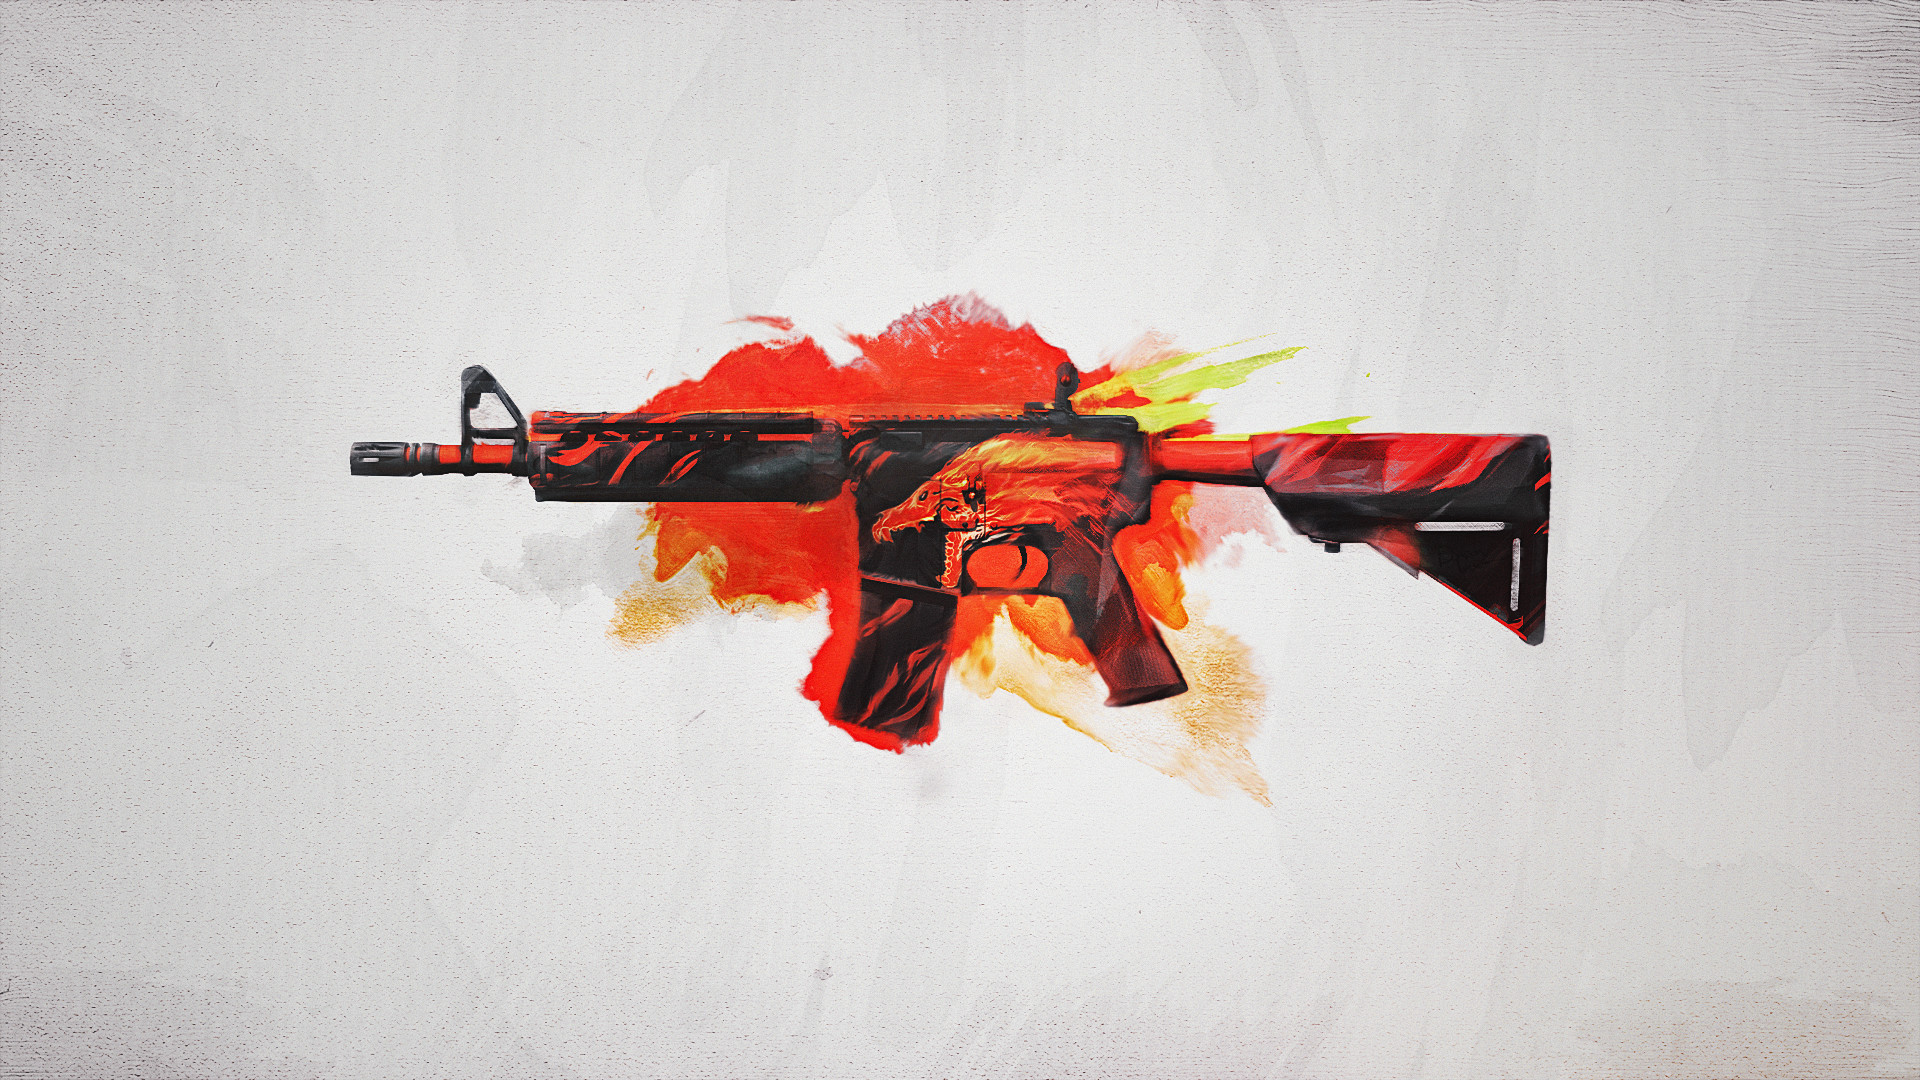 1920x1080 Awp Cs Go Wallpaper for Pinterest